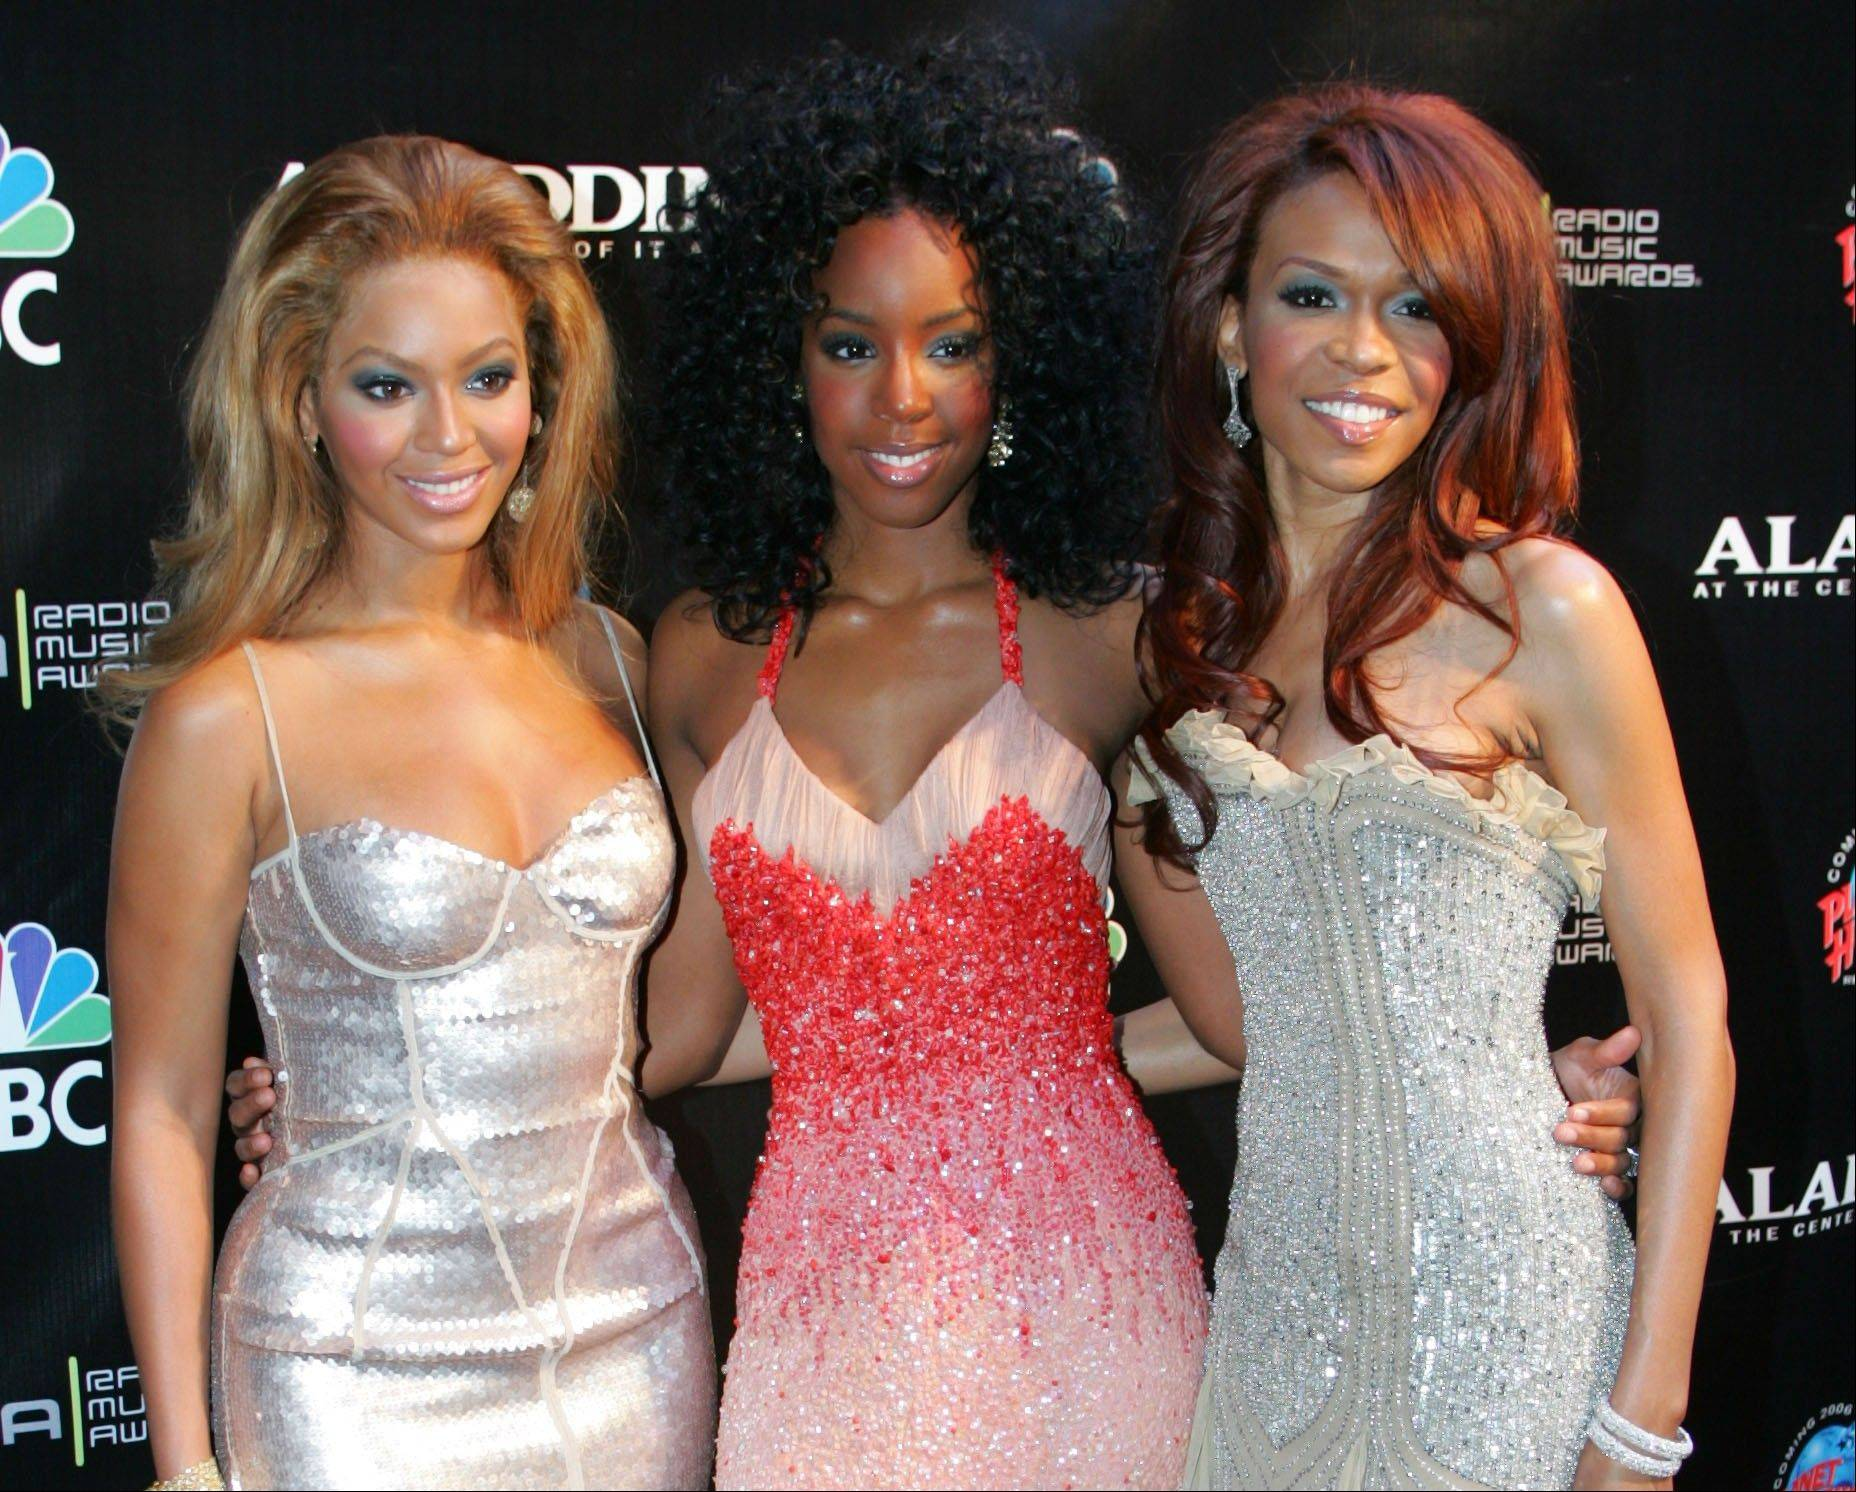 Members of Destiny's Child, from left, included Beyoncé Knowles, Kelly Rowland and Michelle Williams.